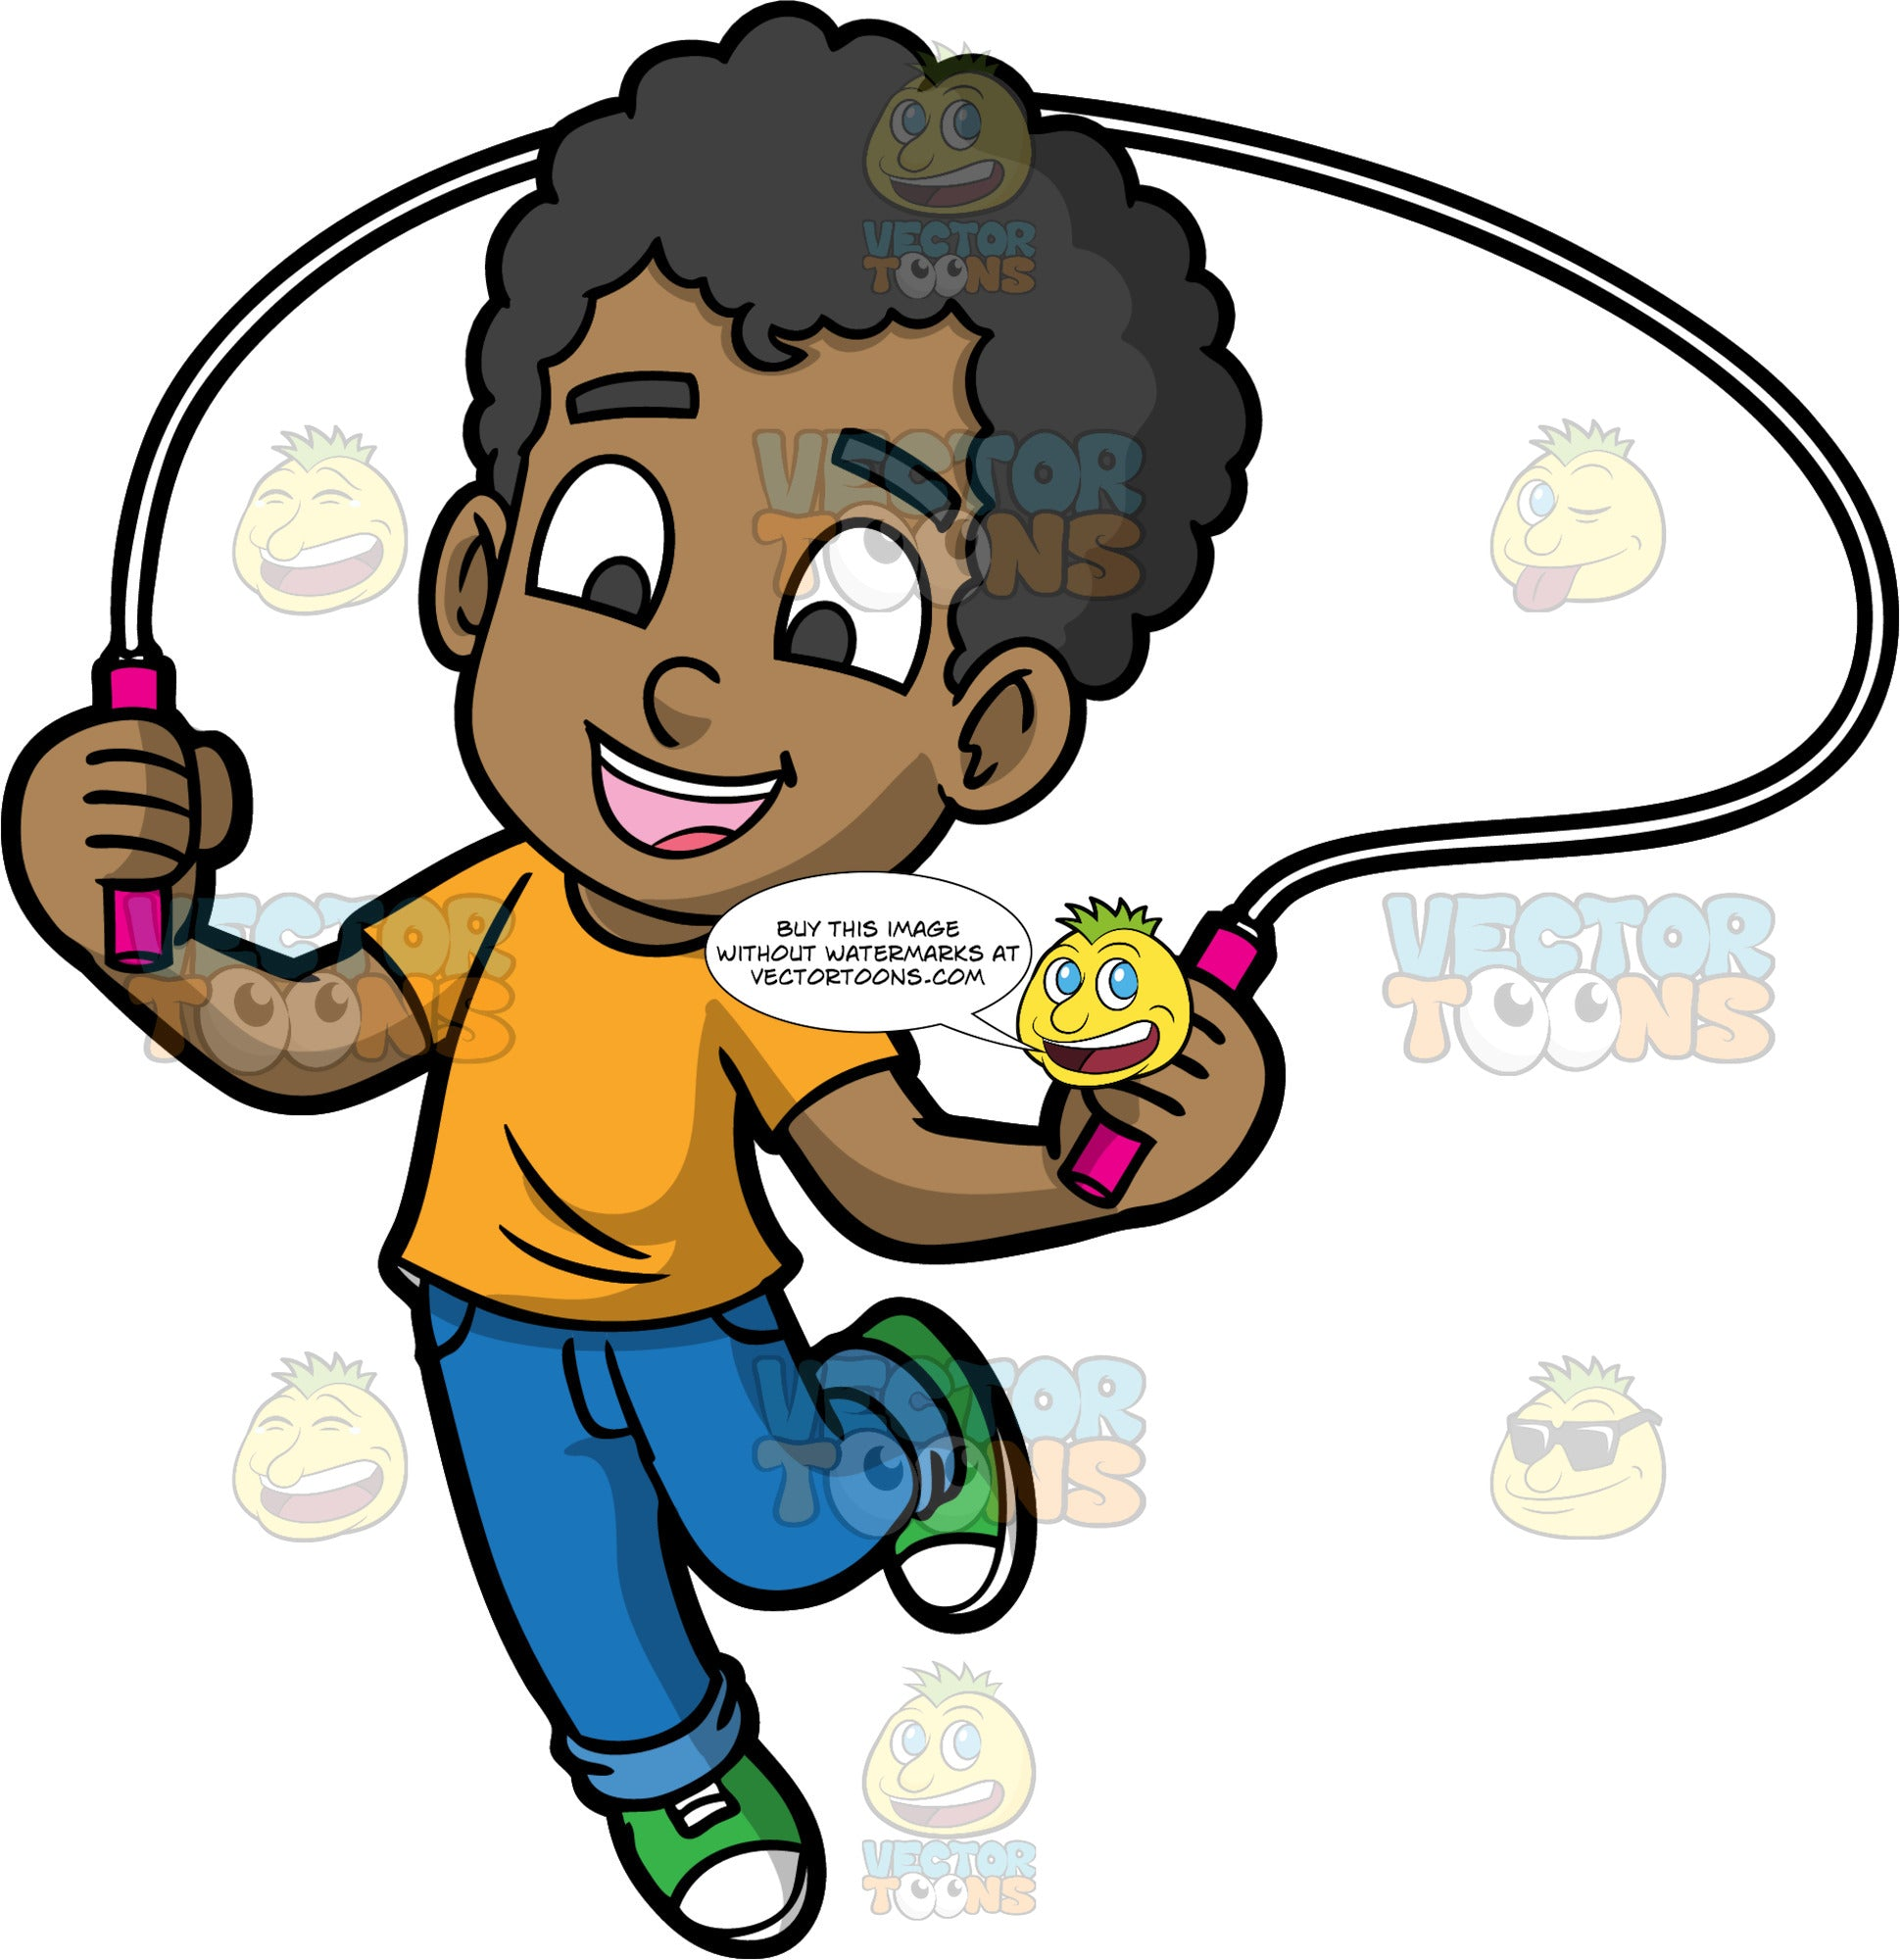 Young Jimmy Jumping Rope. A cute black boy wearing blue jeans, an orange t-shirt, and green sneakers, smiles as he jumps over his skipping rope